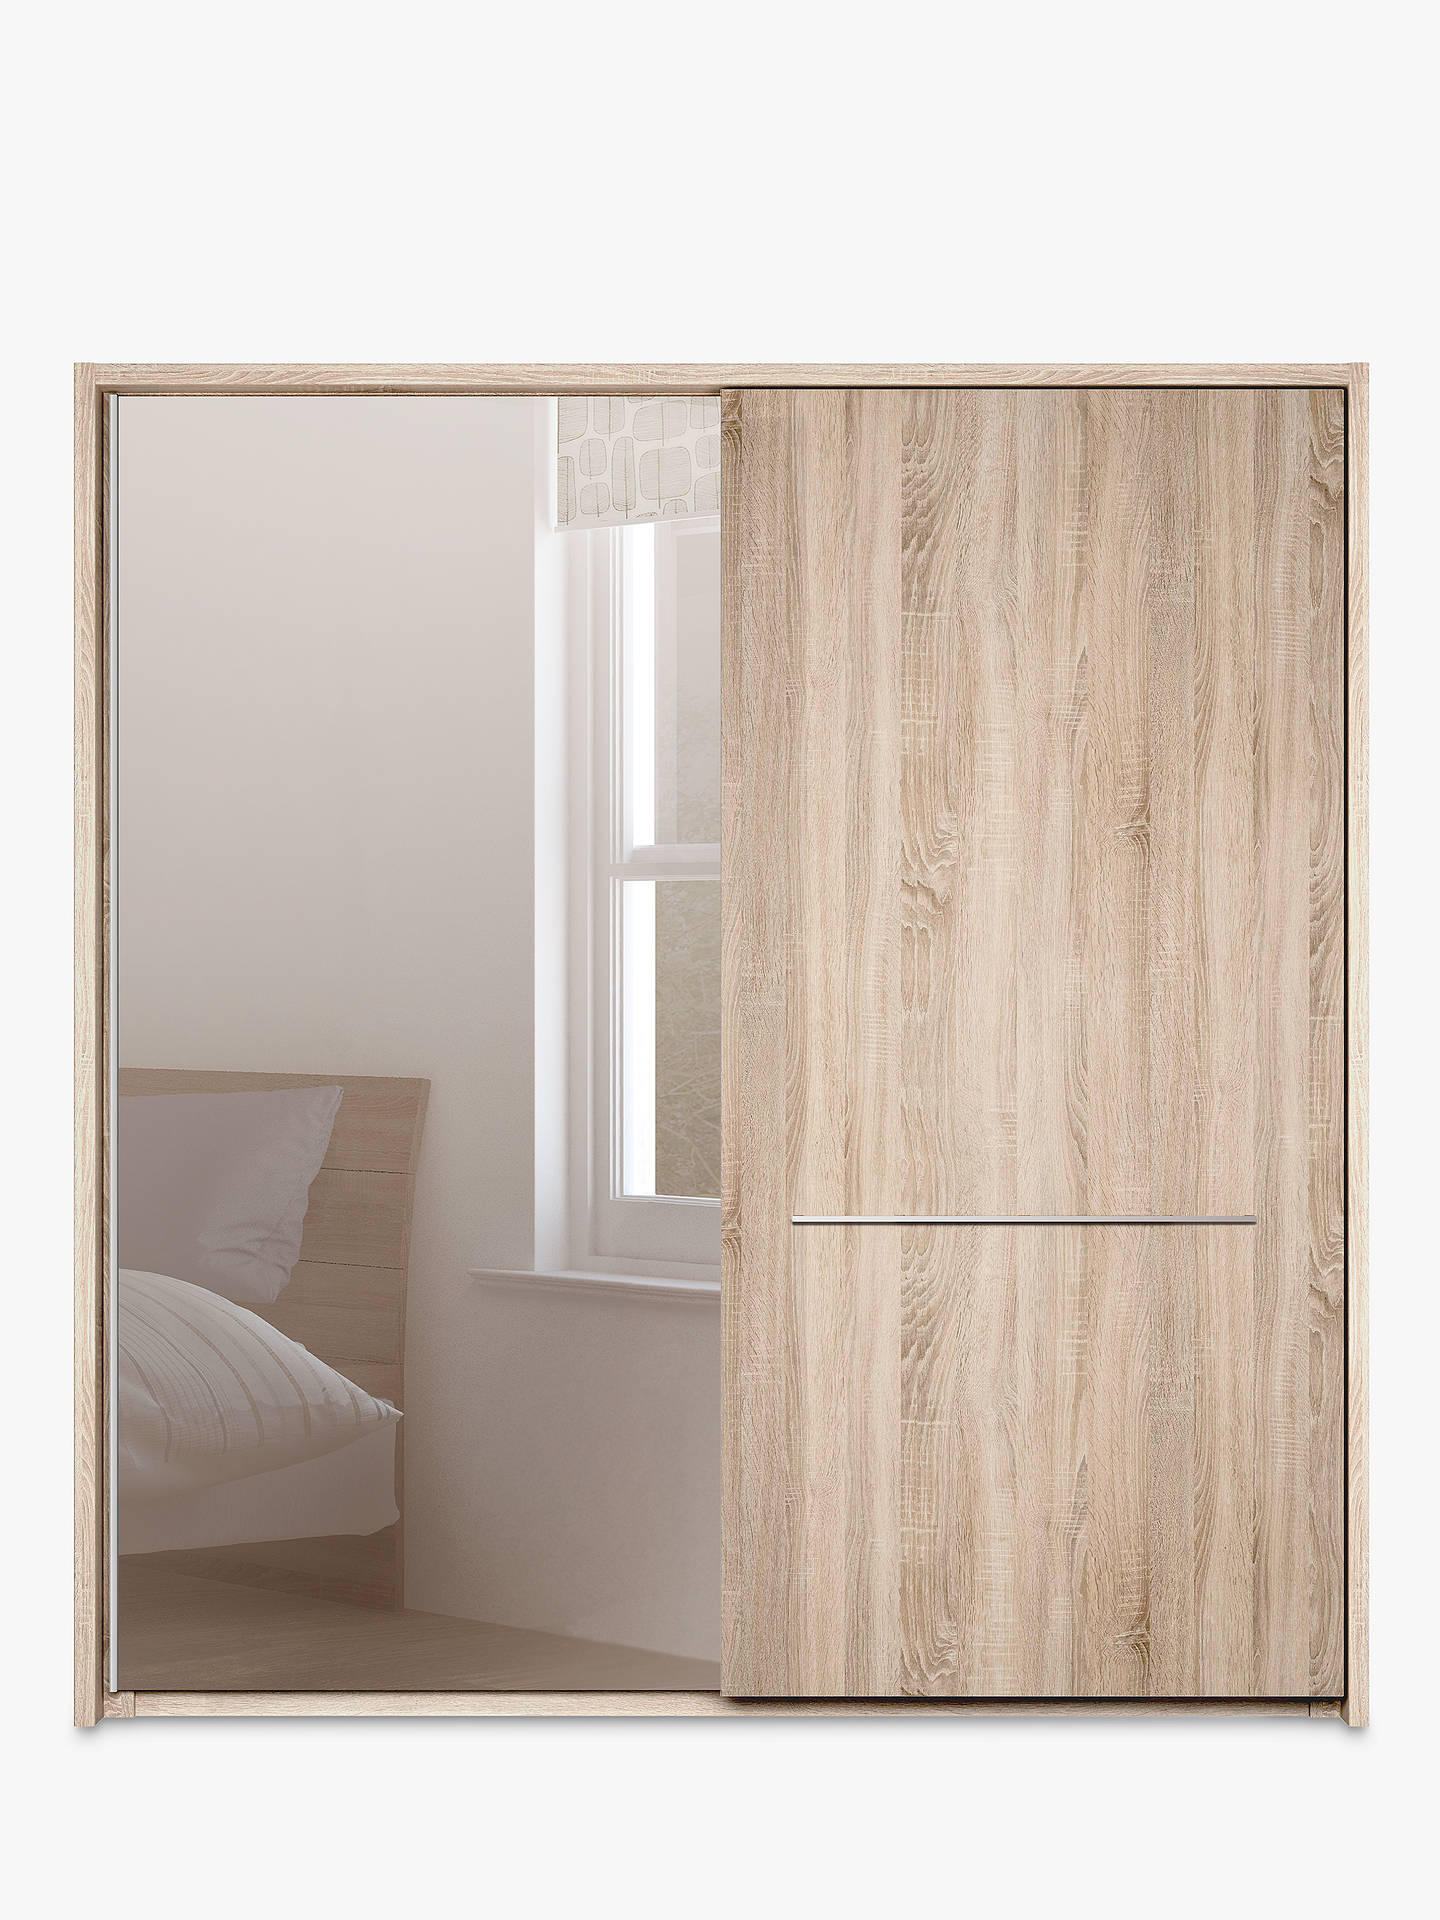 Buy John Lewis & Partners Treviso 200cm Wardrobe with Rustic Oak and Bronzed Mirrored Sliding Doors, Bronzed Mirrored Glass/Light Rustic Oak Online at johnlewis.com